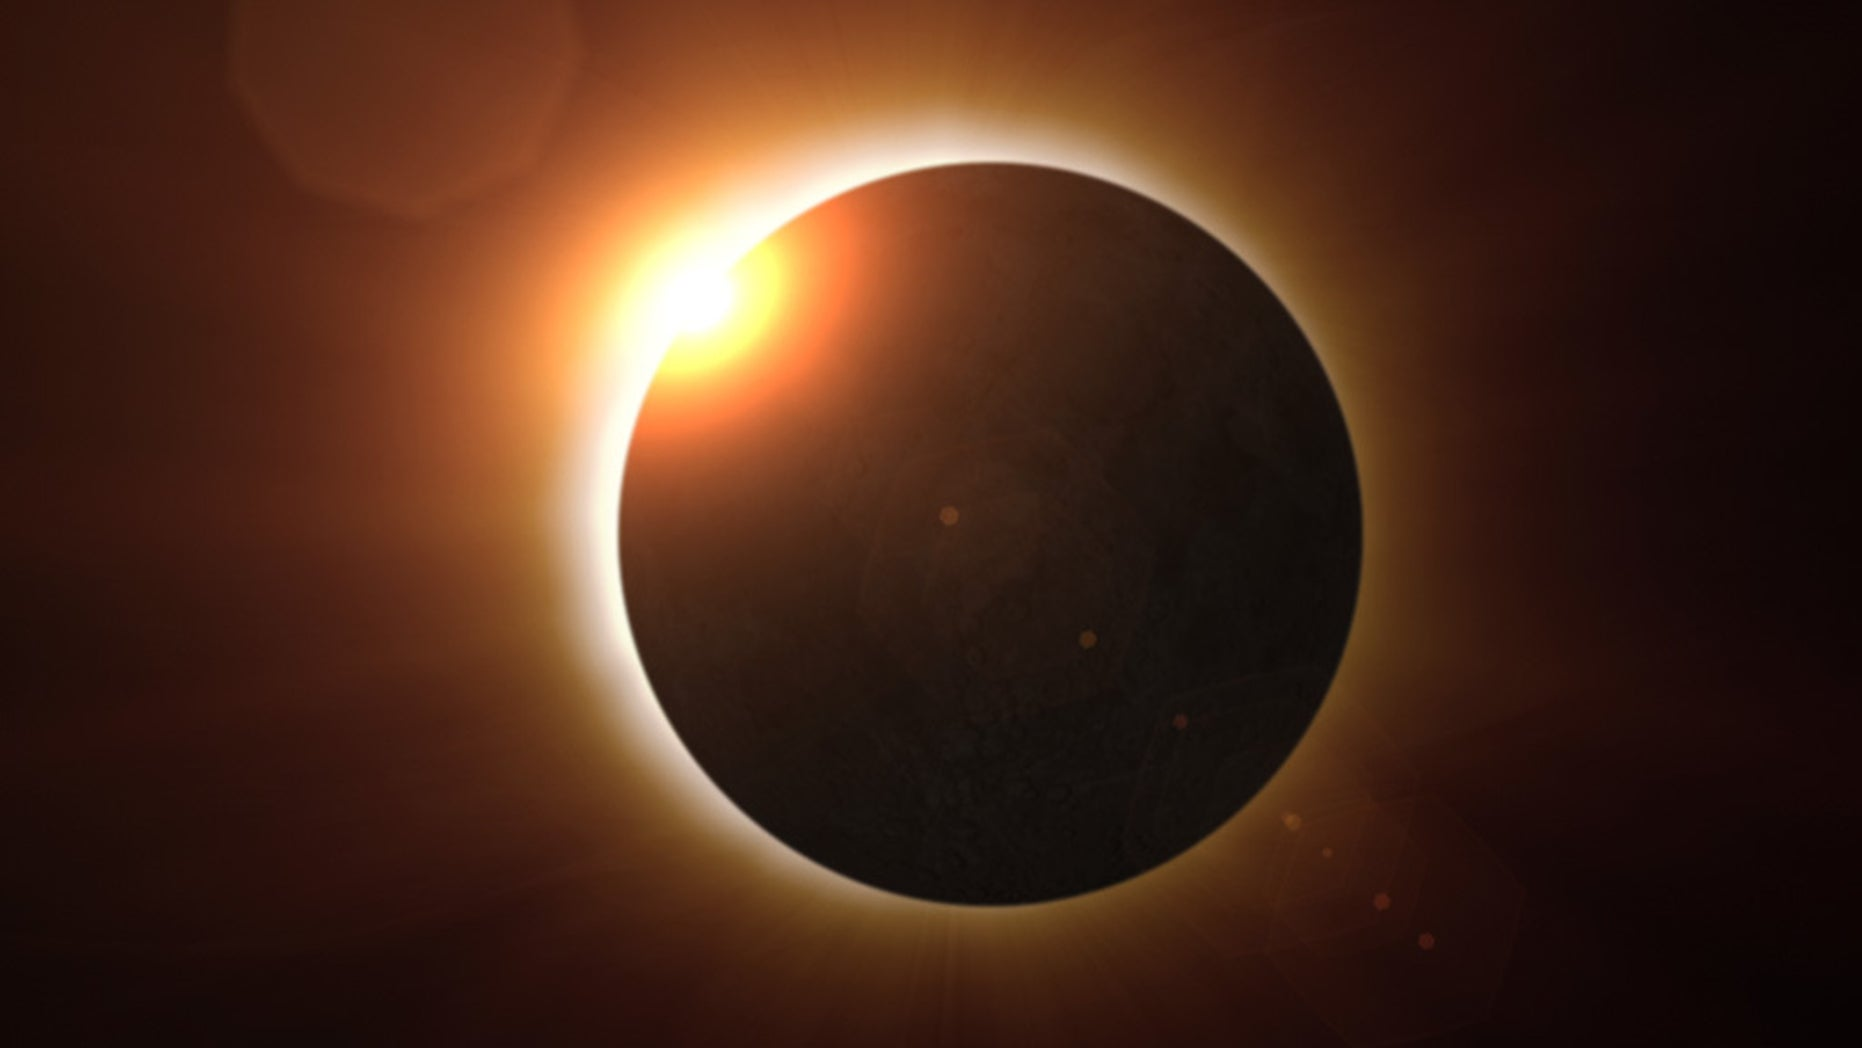 An image of a total solar eclipse in 2016. Another total solar eclipse will take place on Aug. 21, 2017.